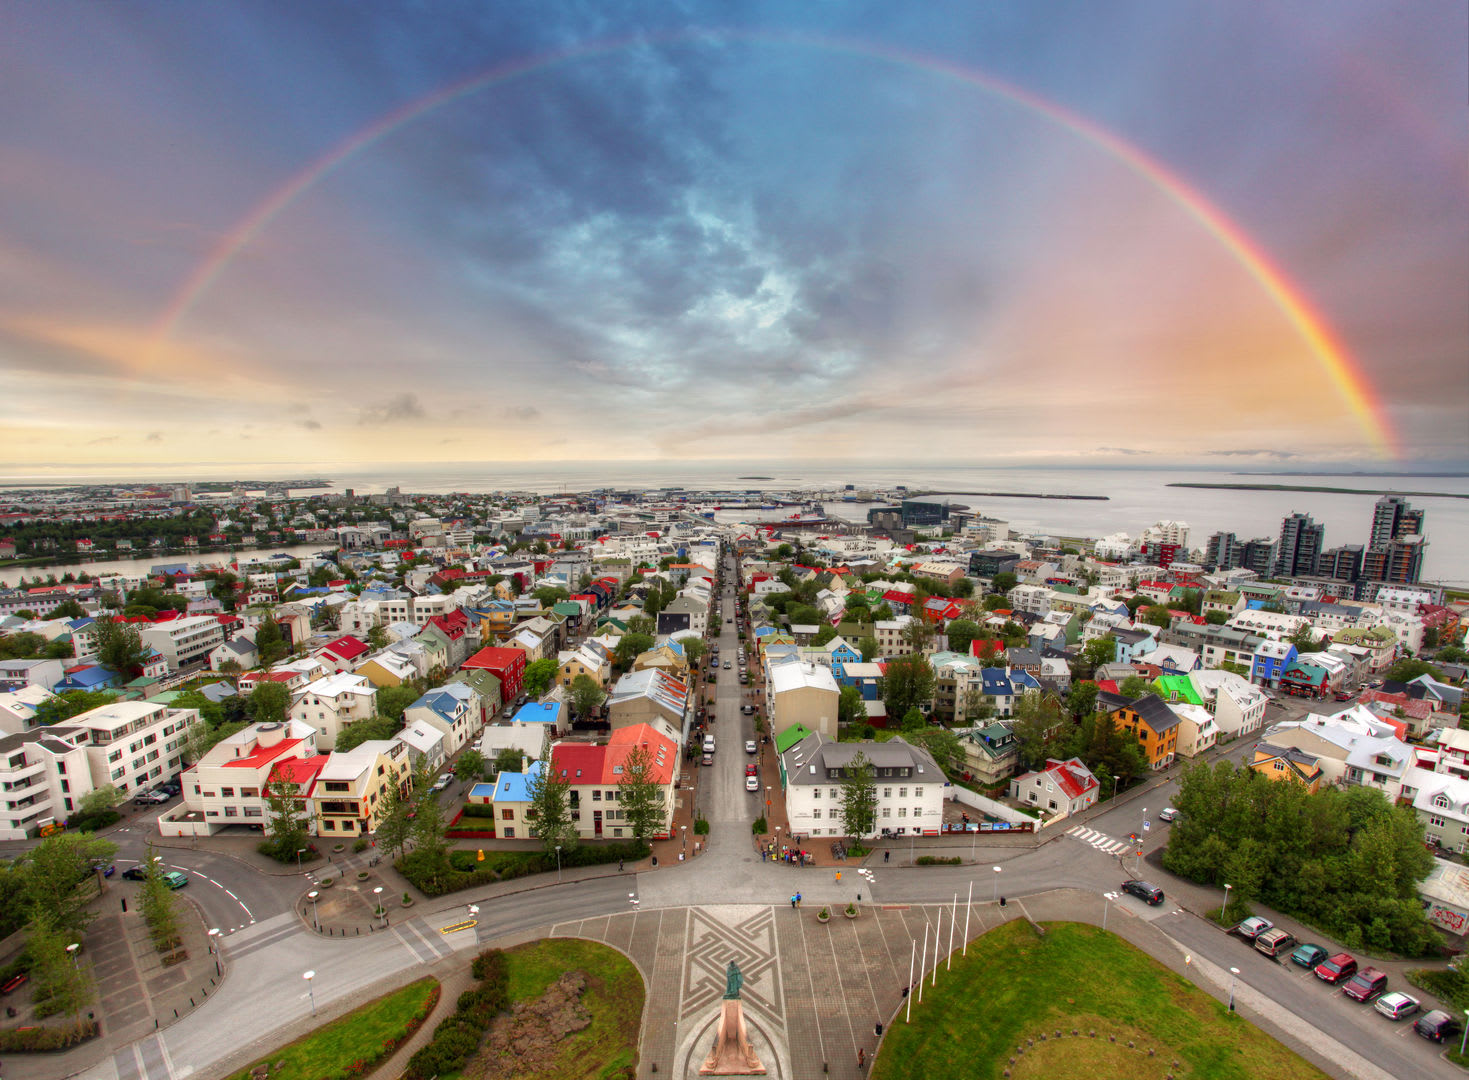 An aerial view of the city of Reykjavik, as viewed from Hallgrimskirkja, with a rainbow circling over the city landscape